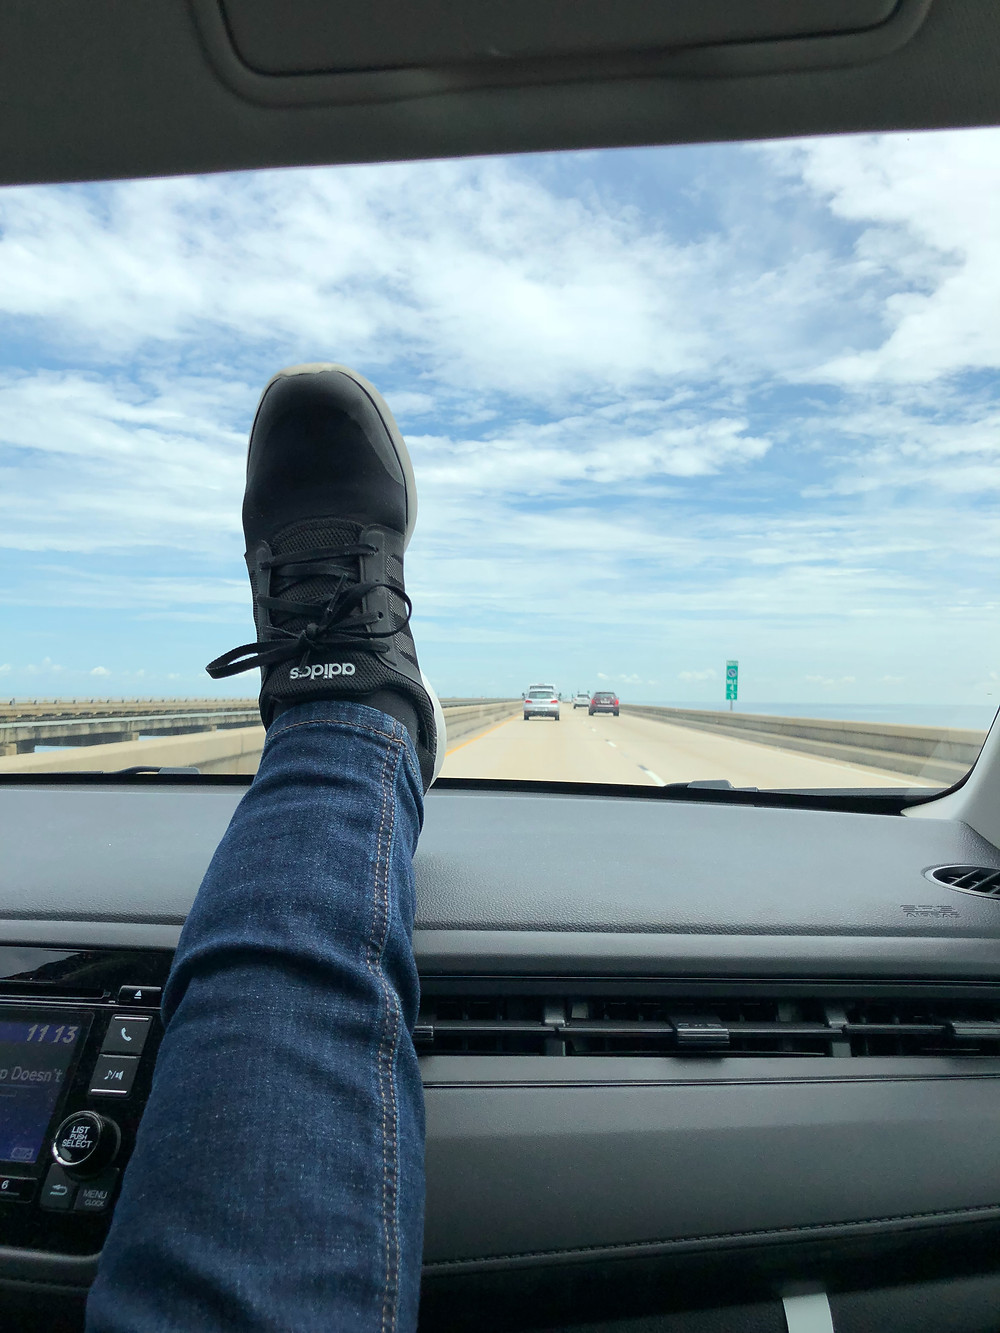 Legs on car interior over the Mandeville Causeway in New Orleans